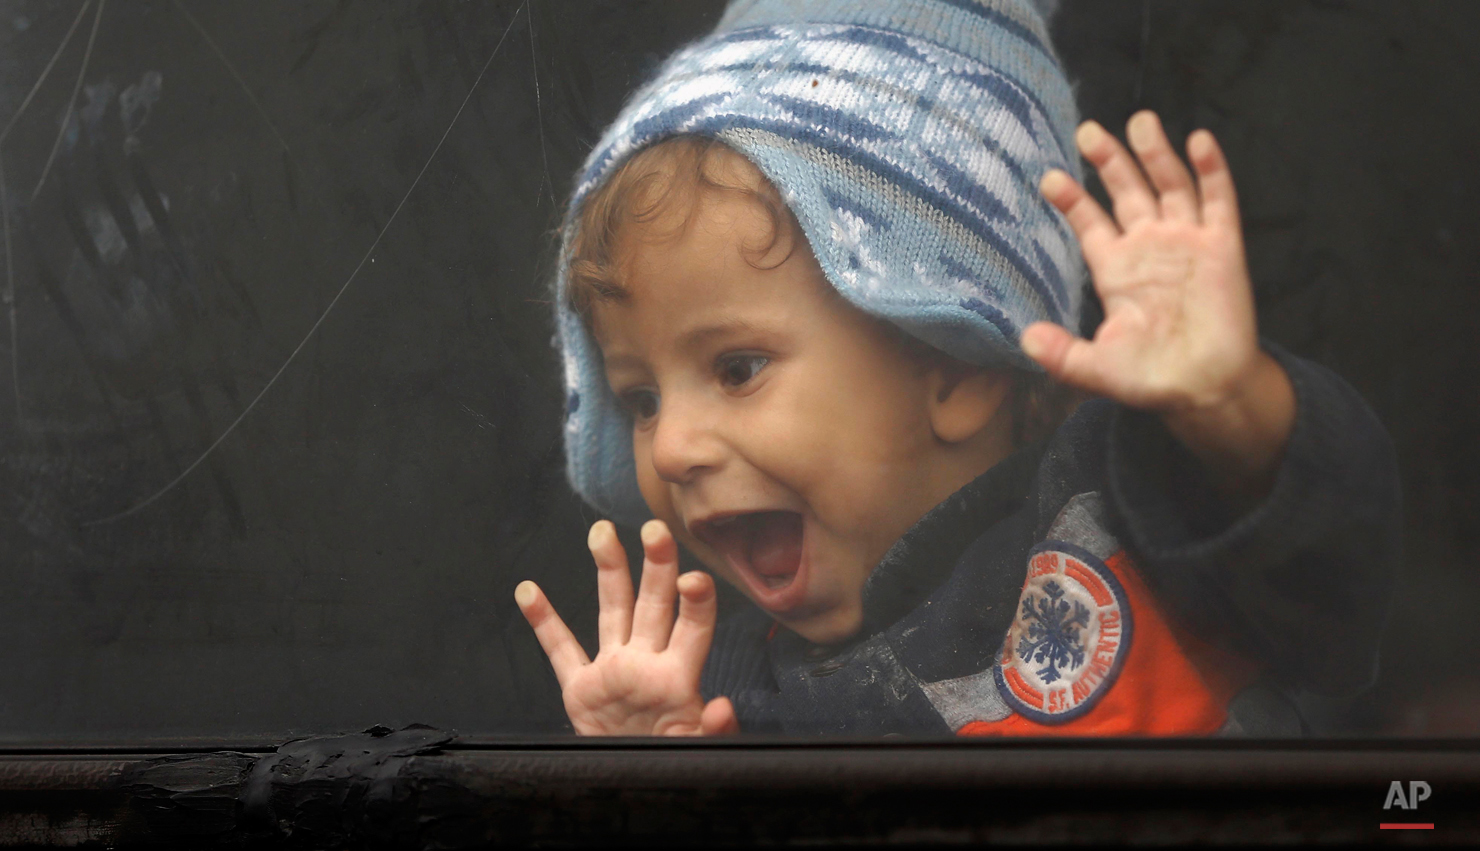 In this photo taken on Friday, Sept. 11, 2015, a young child laughs, looking out of a bus window in a center for asylum seekers near Roszke, southern Hungary. Among the hundreds of thousands of migrants making their way to Europe, there are many families whose young children still play or find something to smile about even after harrowing experiences and long journeys. (AP Photo/Matthias Schrader)